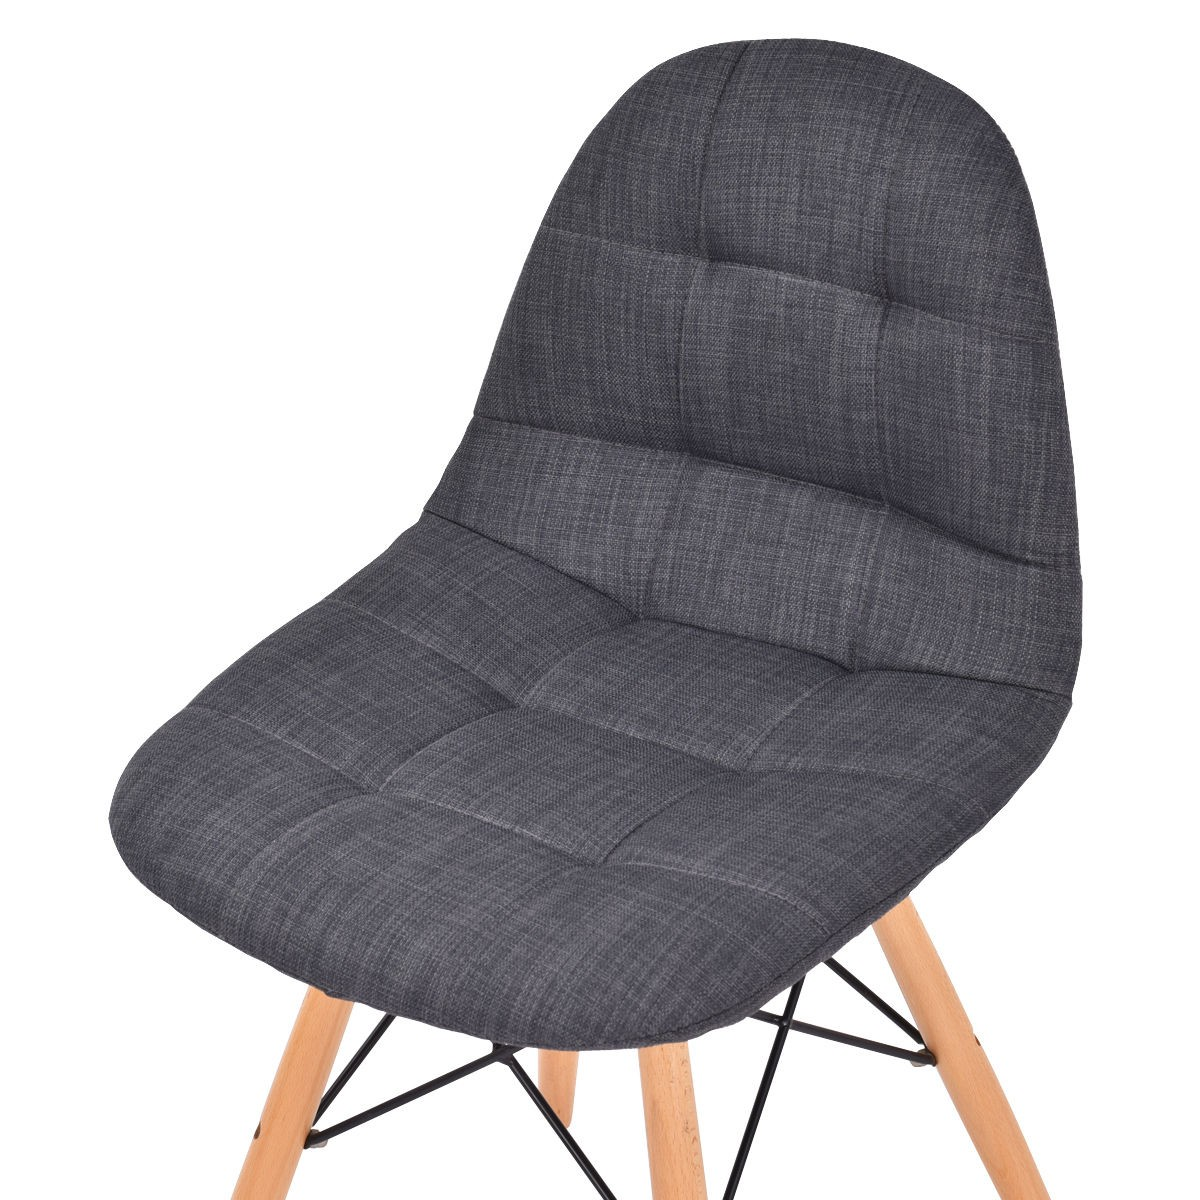 2PC Set Mid Century Modern Style Upholstered DSW Dining Side Chair Wood Leg S